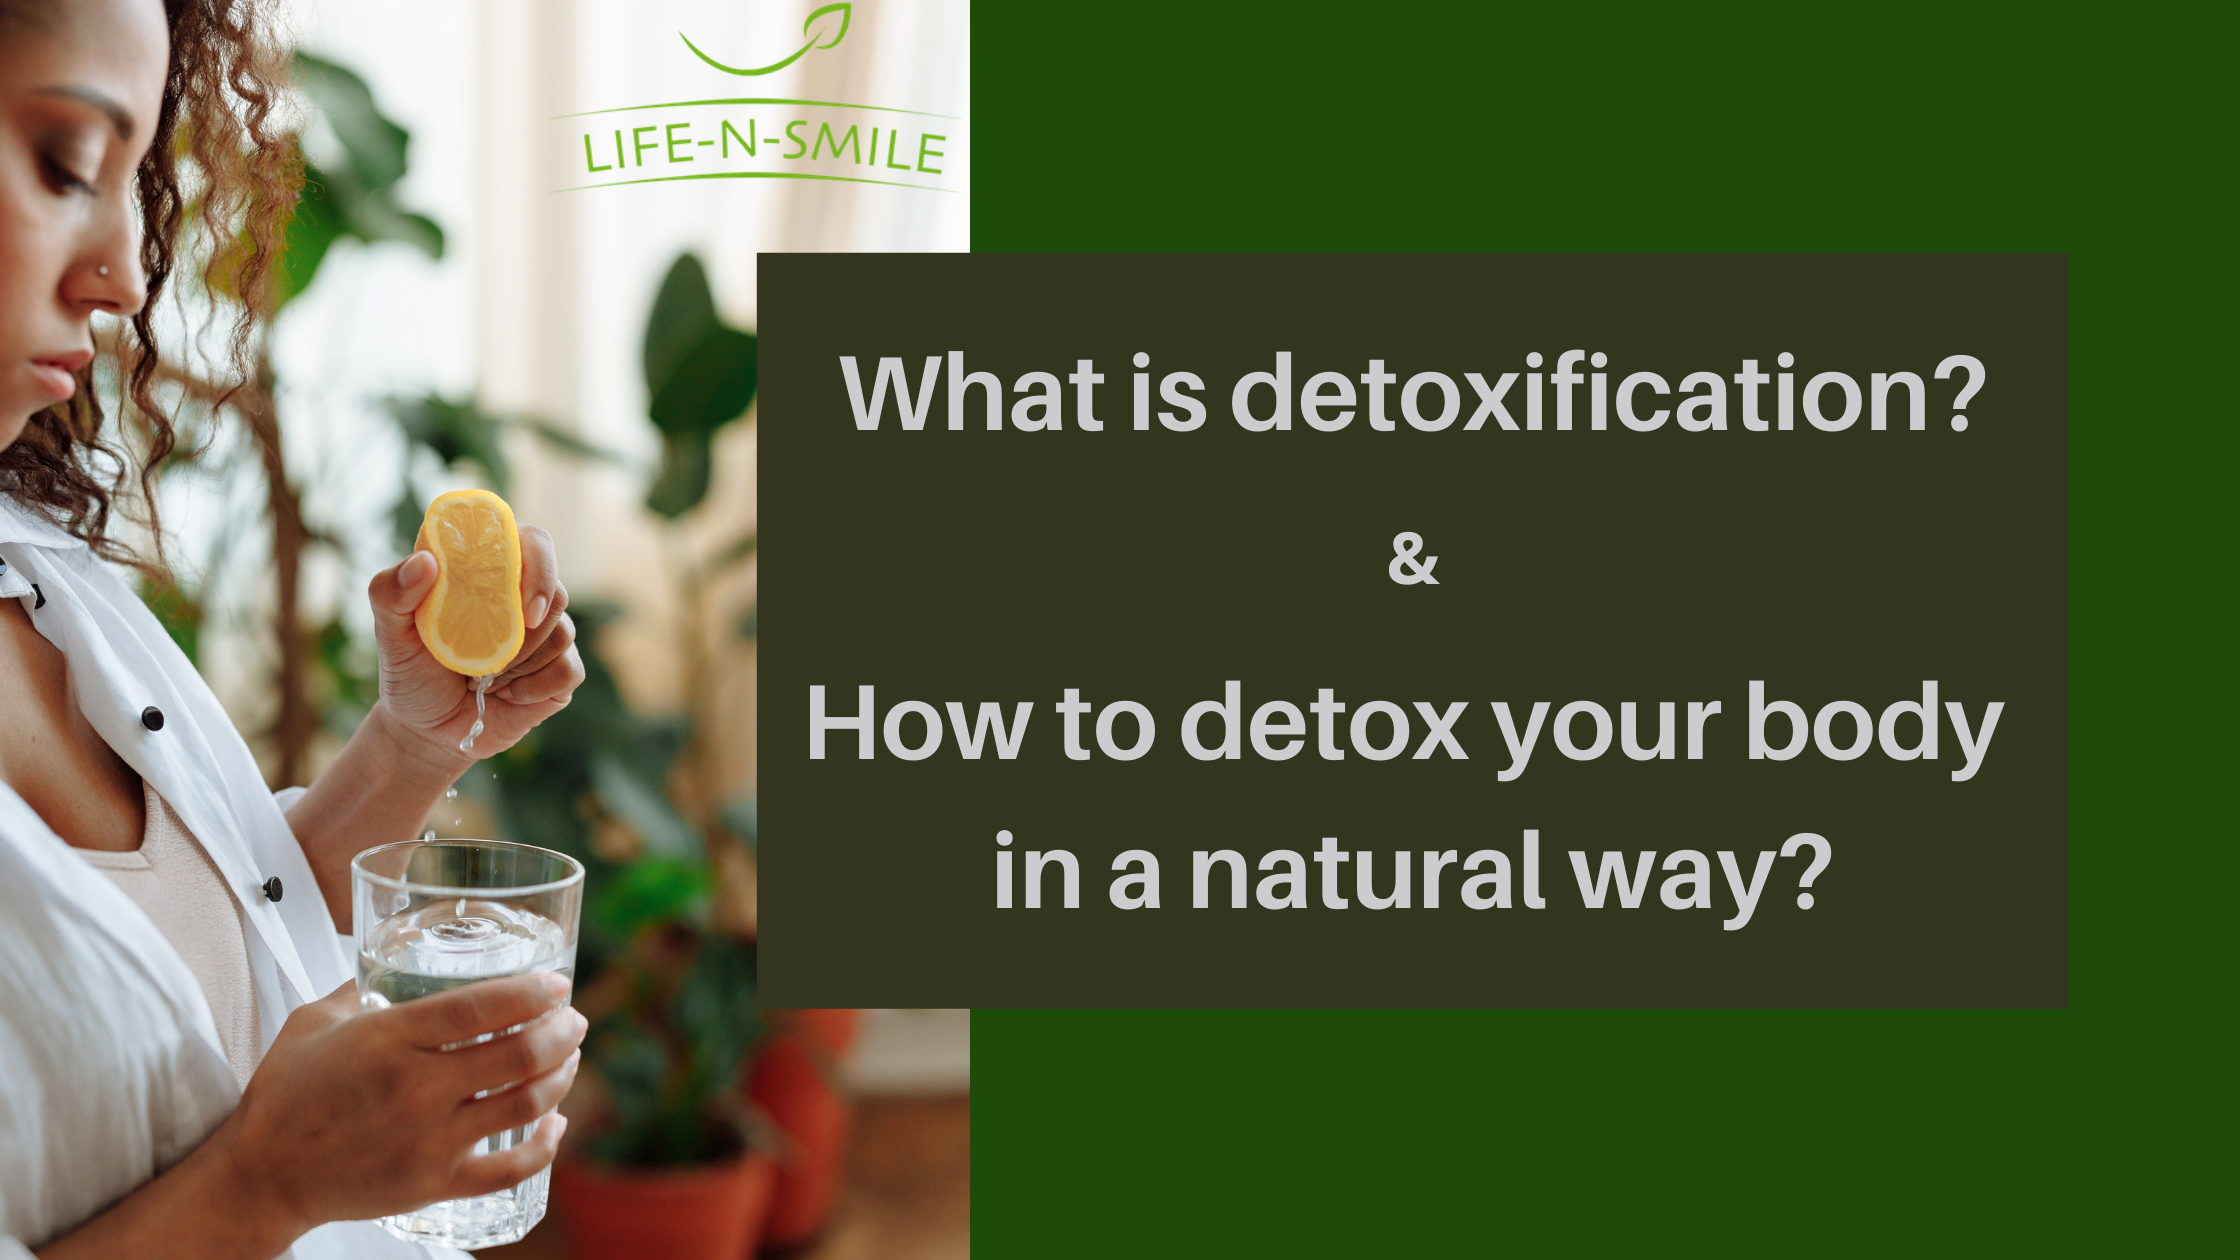 Detox - How to do it in a natural way!